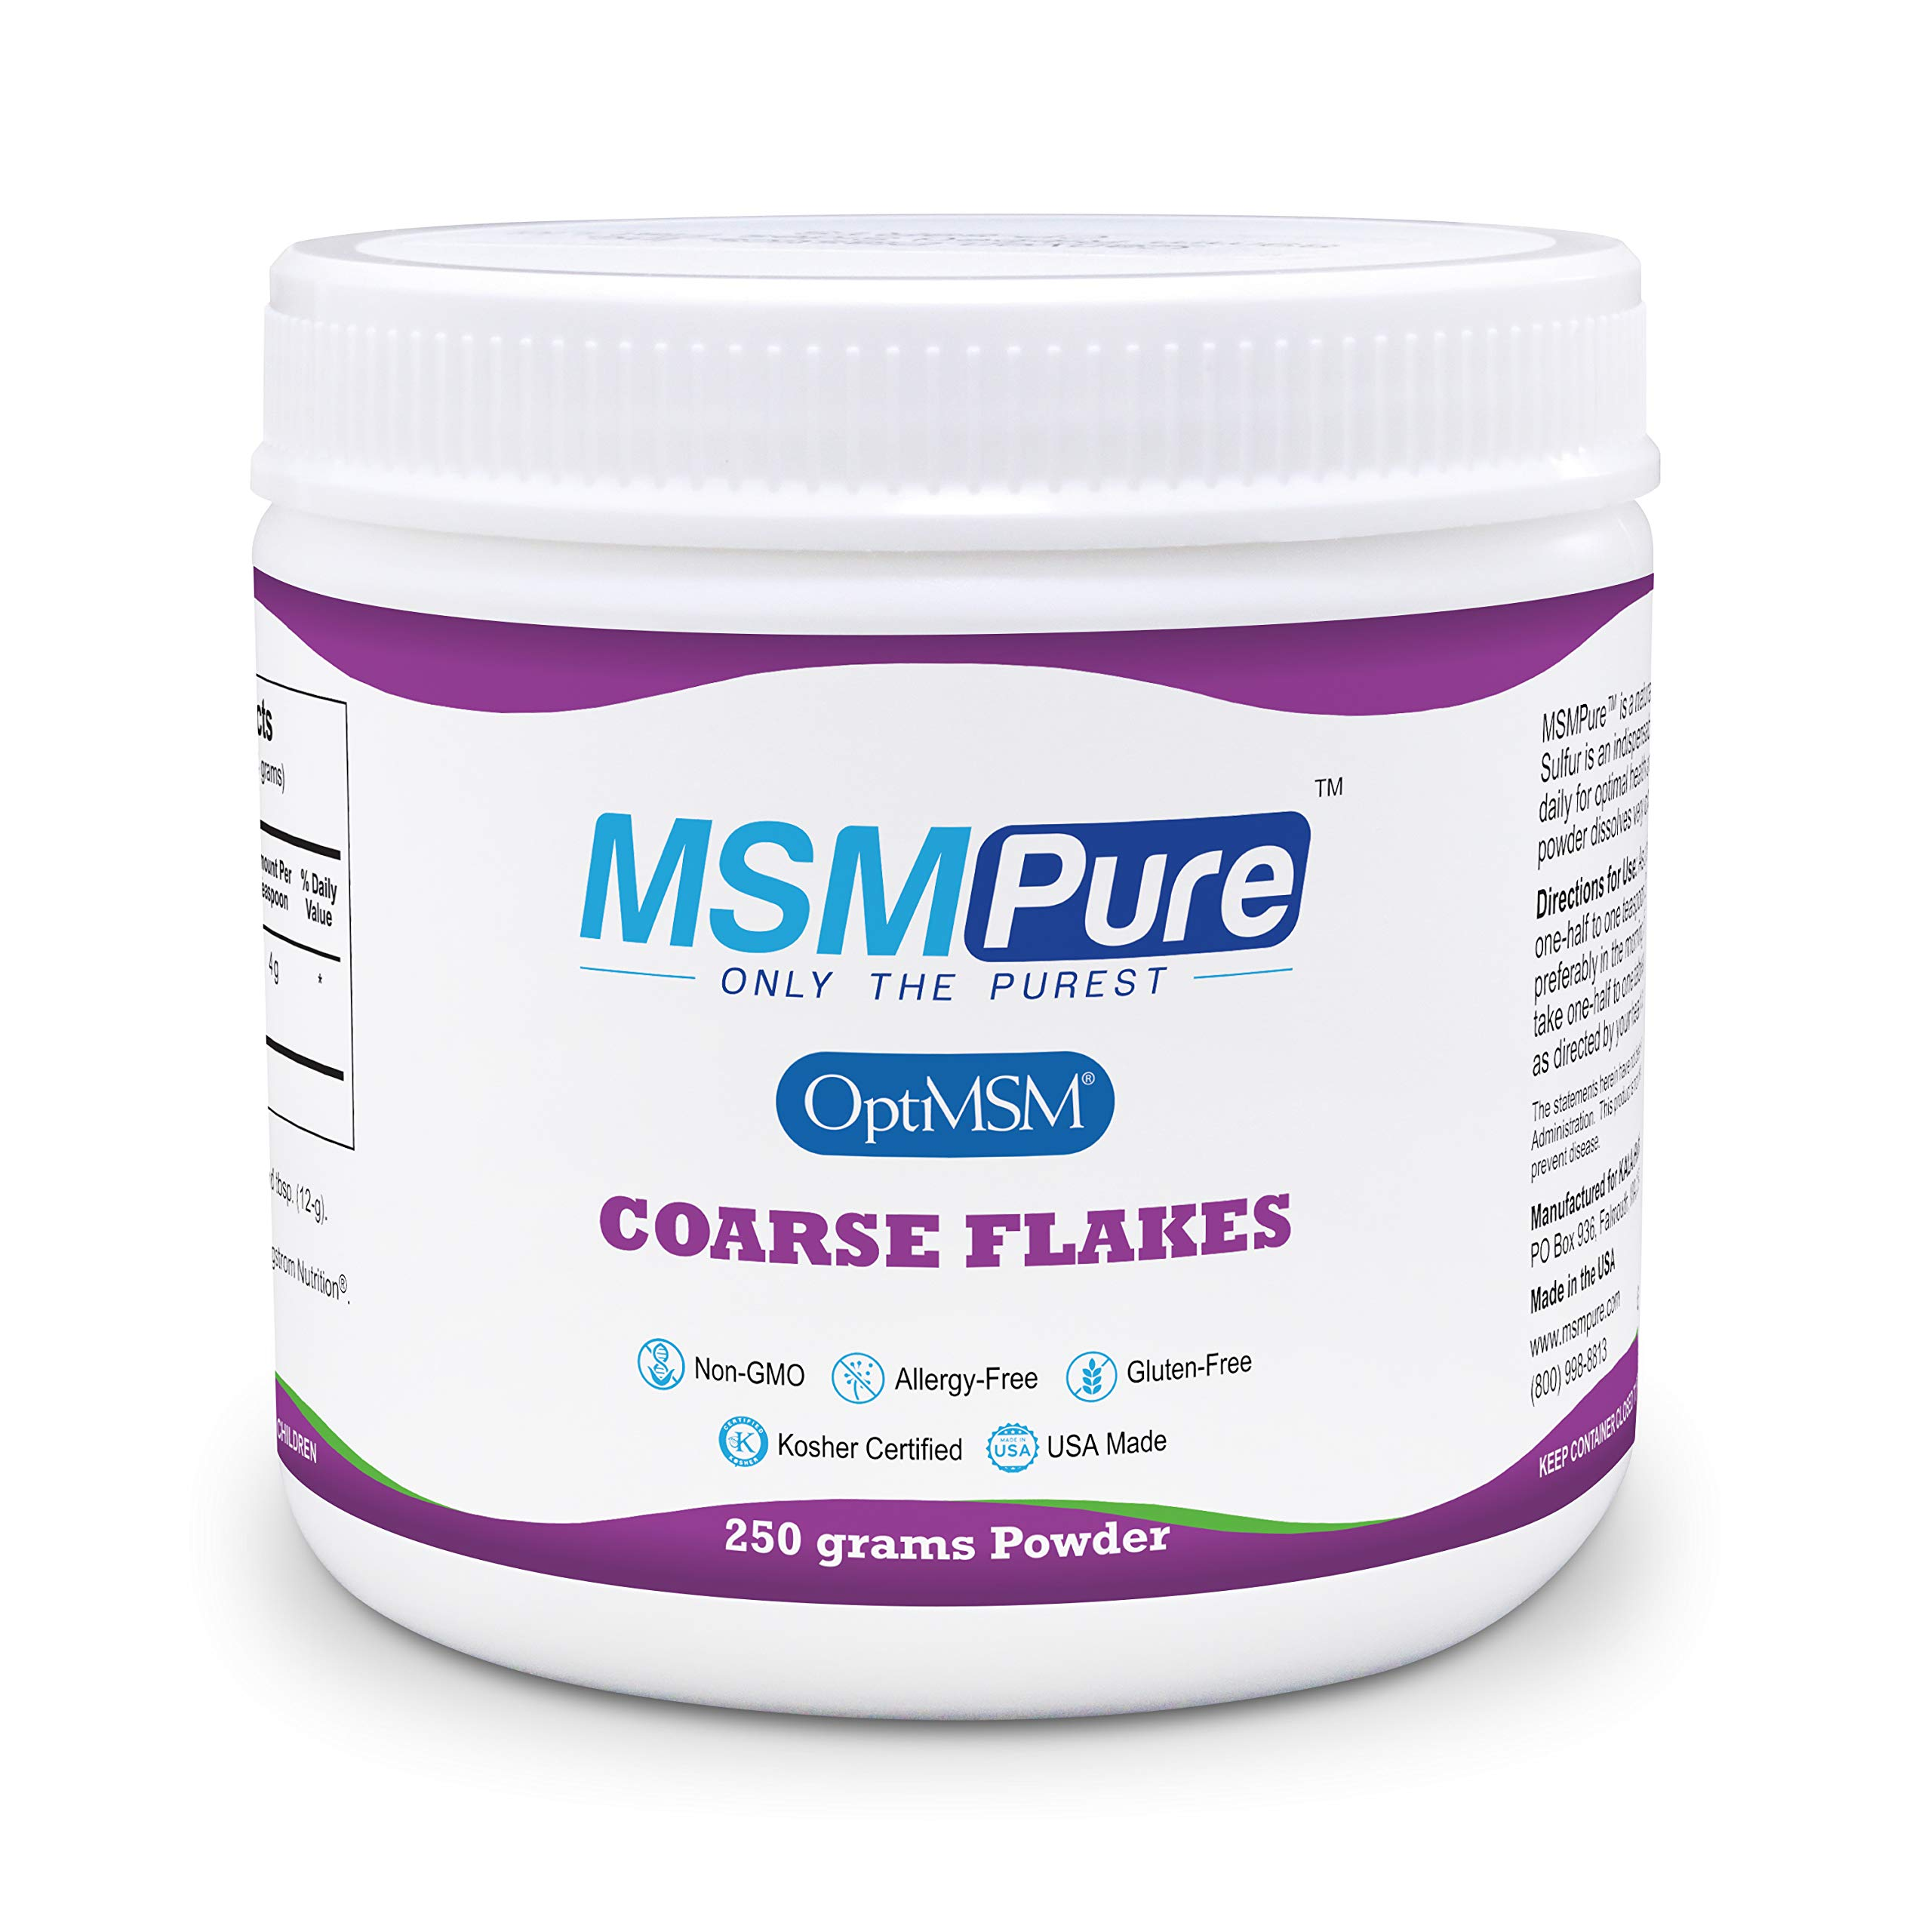 Kala Health MSMPure Coarse Powder Flakes, 8.8 ozs, Pure MSM Organic Sulfur Crystals Supplement for Joint Pain, Muscle Soreness, Inflammation Relief, Immune Support, Skin, Hair & Nails, Made in USA